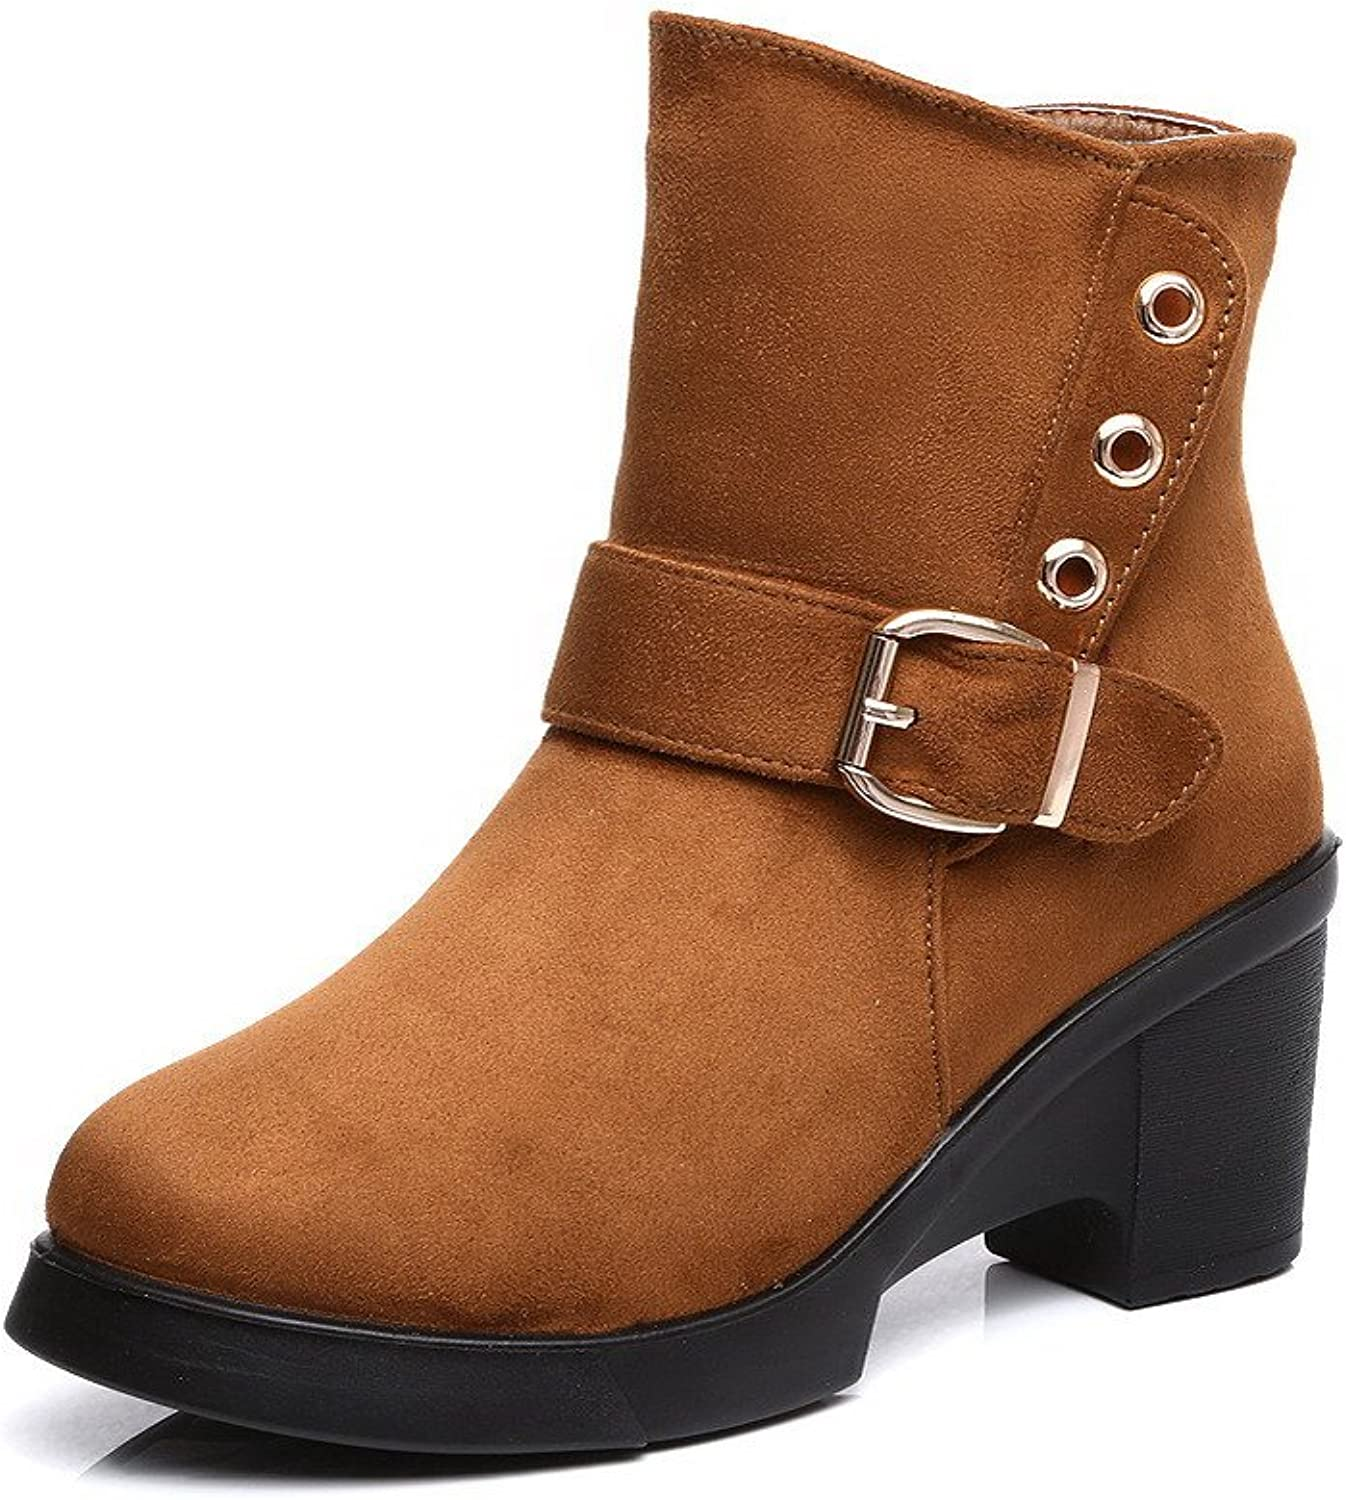 WeiPoot Women's Low Top Solid Zipper Round Closed Toe High Heels Boots with Metal Piece